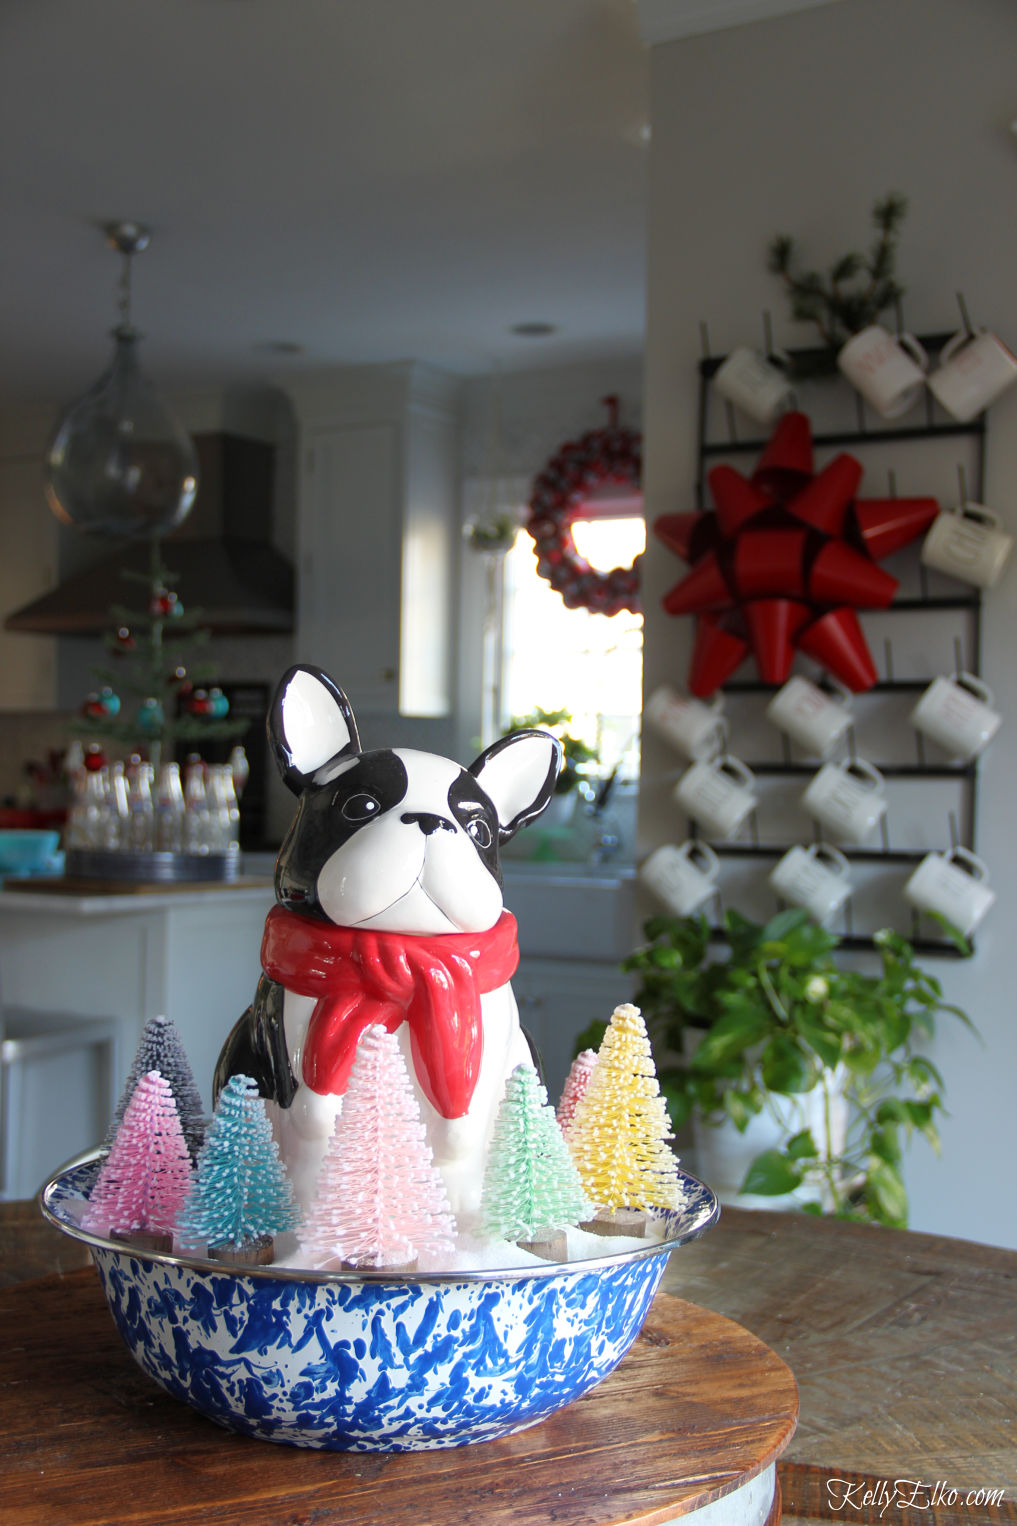 Love her festive Christmas kitchen and this adorable little dog surrounded by bottle brush trees centerpiece kellyelko.com #christmas #christmascenterpiece #christmasdecor #christmastrees #christmasdecorating #christmaskitchen #frenchbdulldog #vintagechristmas